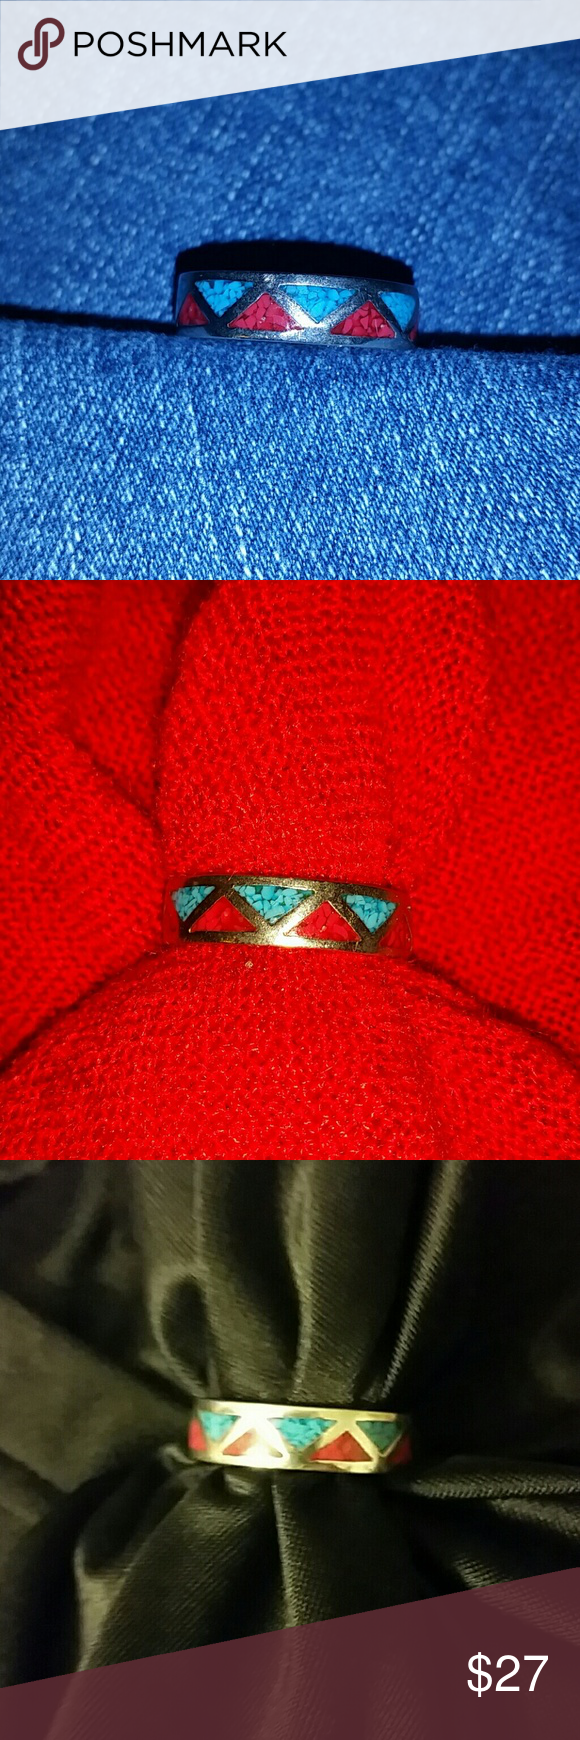 Unisex ring New Mexico SS with inlaid turquoise and red lapis Jewelry Rings